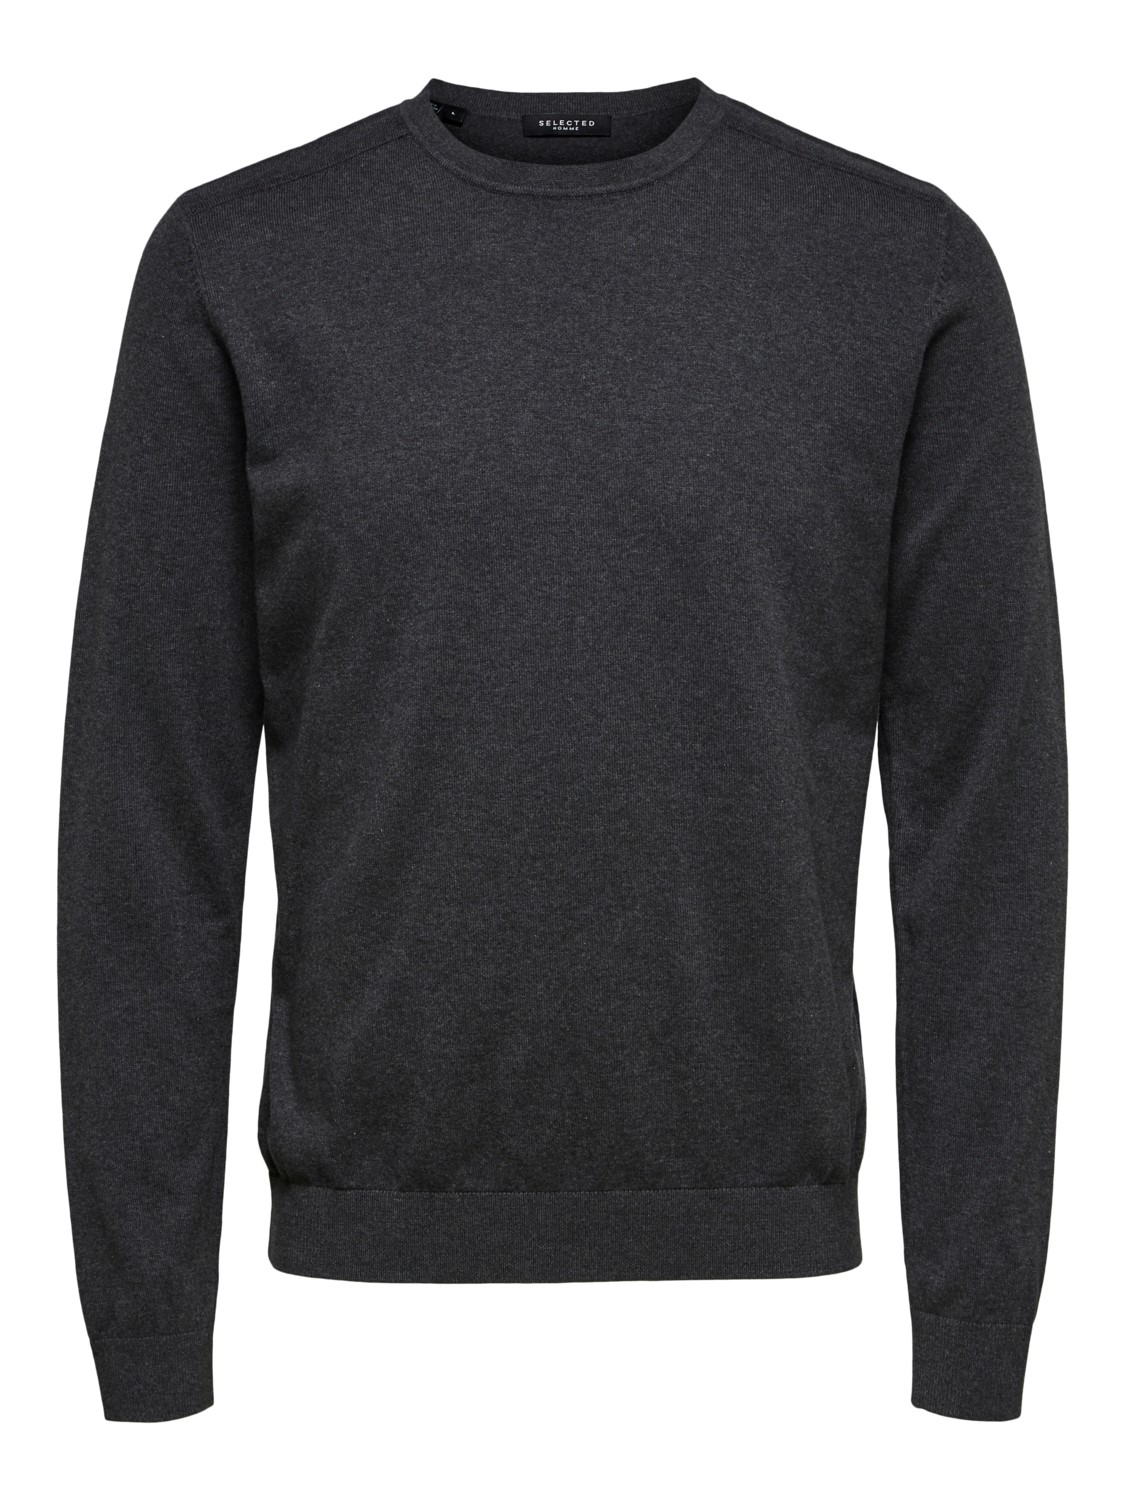 Selected - slhberg crew neck Strik Antracit | GAte36 Hobro